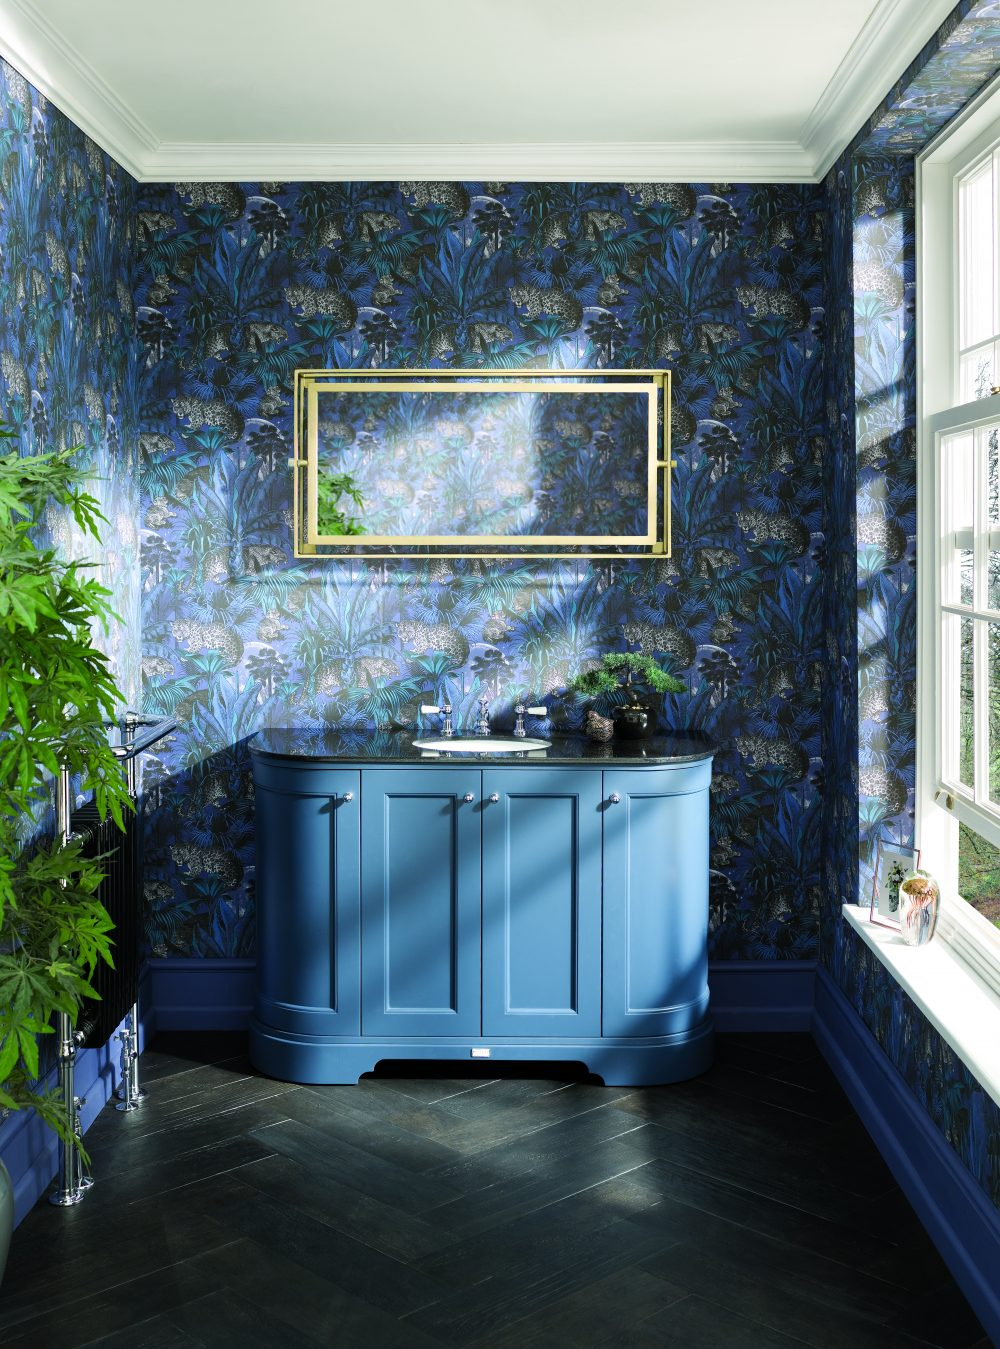 The Stiffkey Blue 1200 Curved Unit with Black Top with Divine Savages Wallpaper - Nocturnal Faunacation